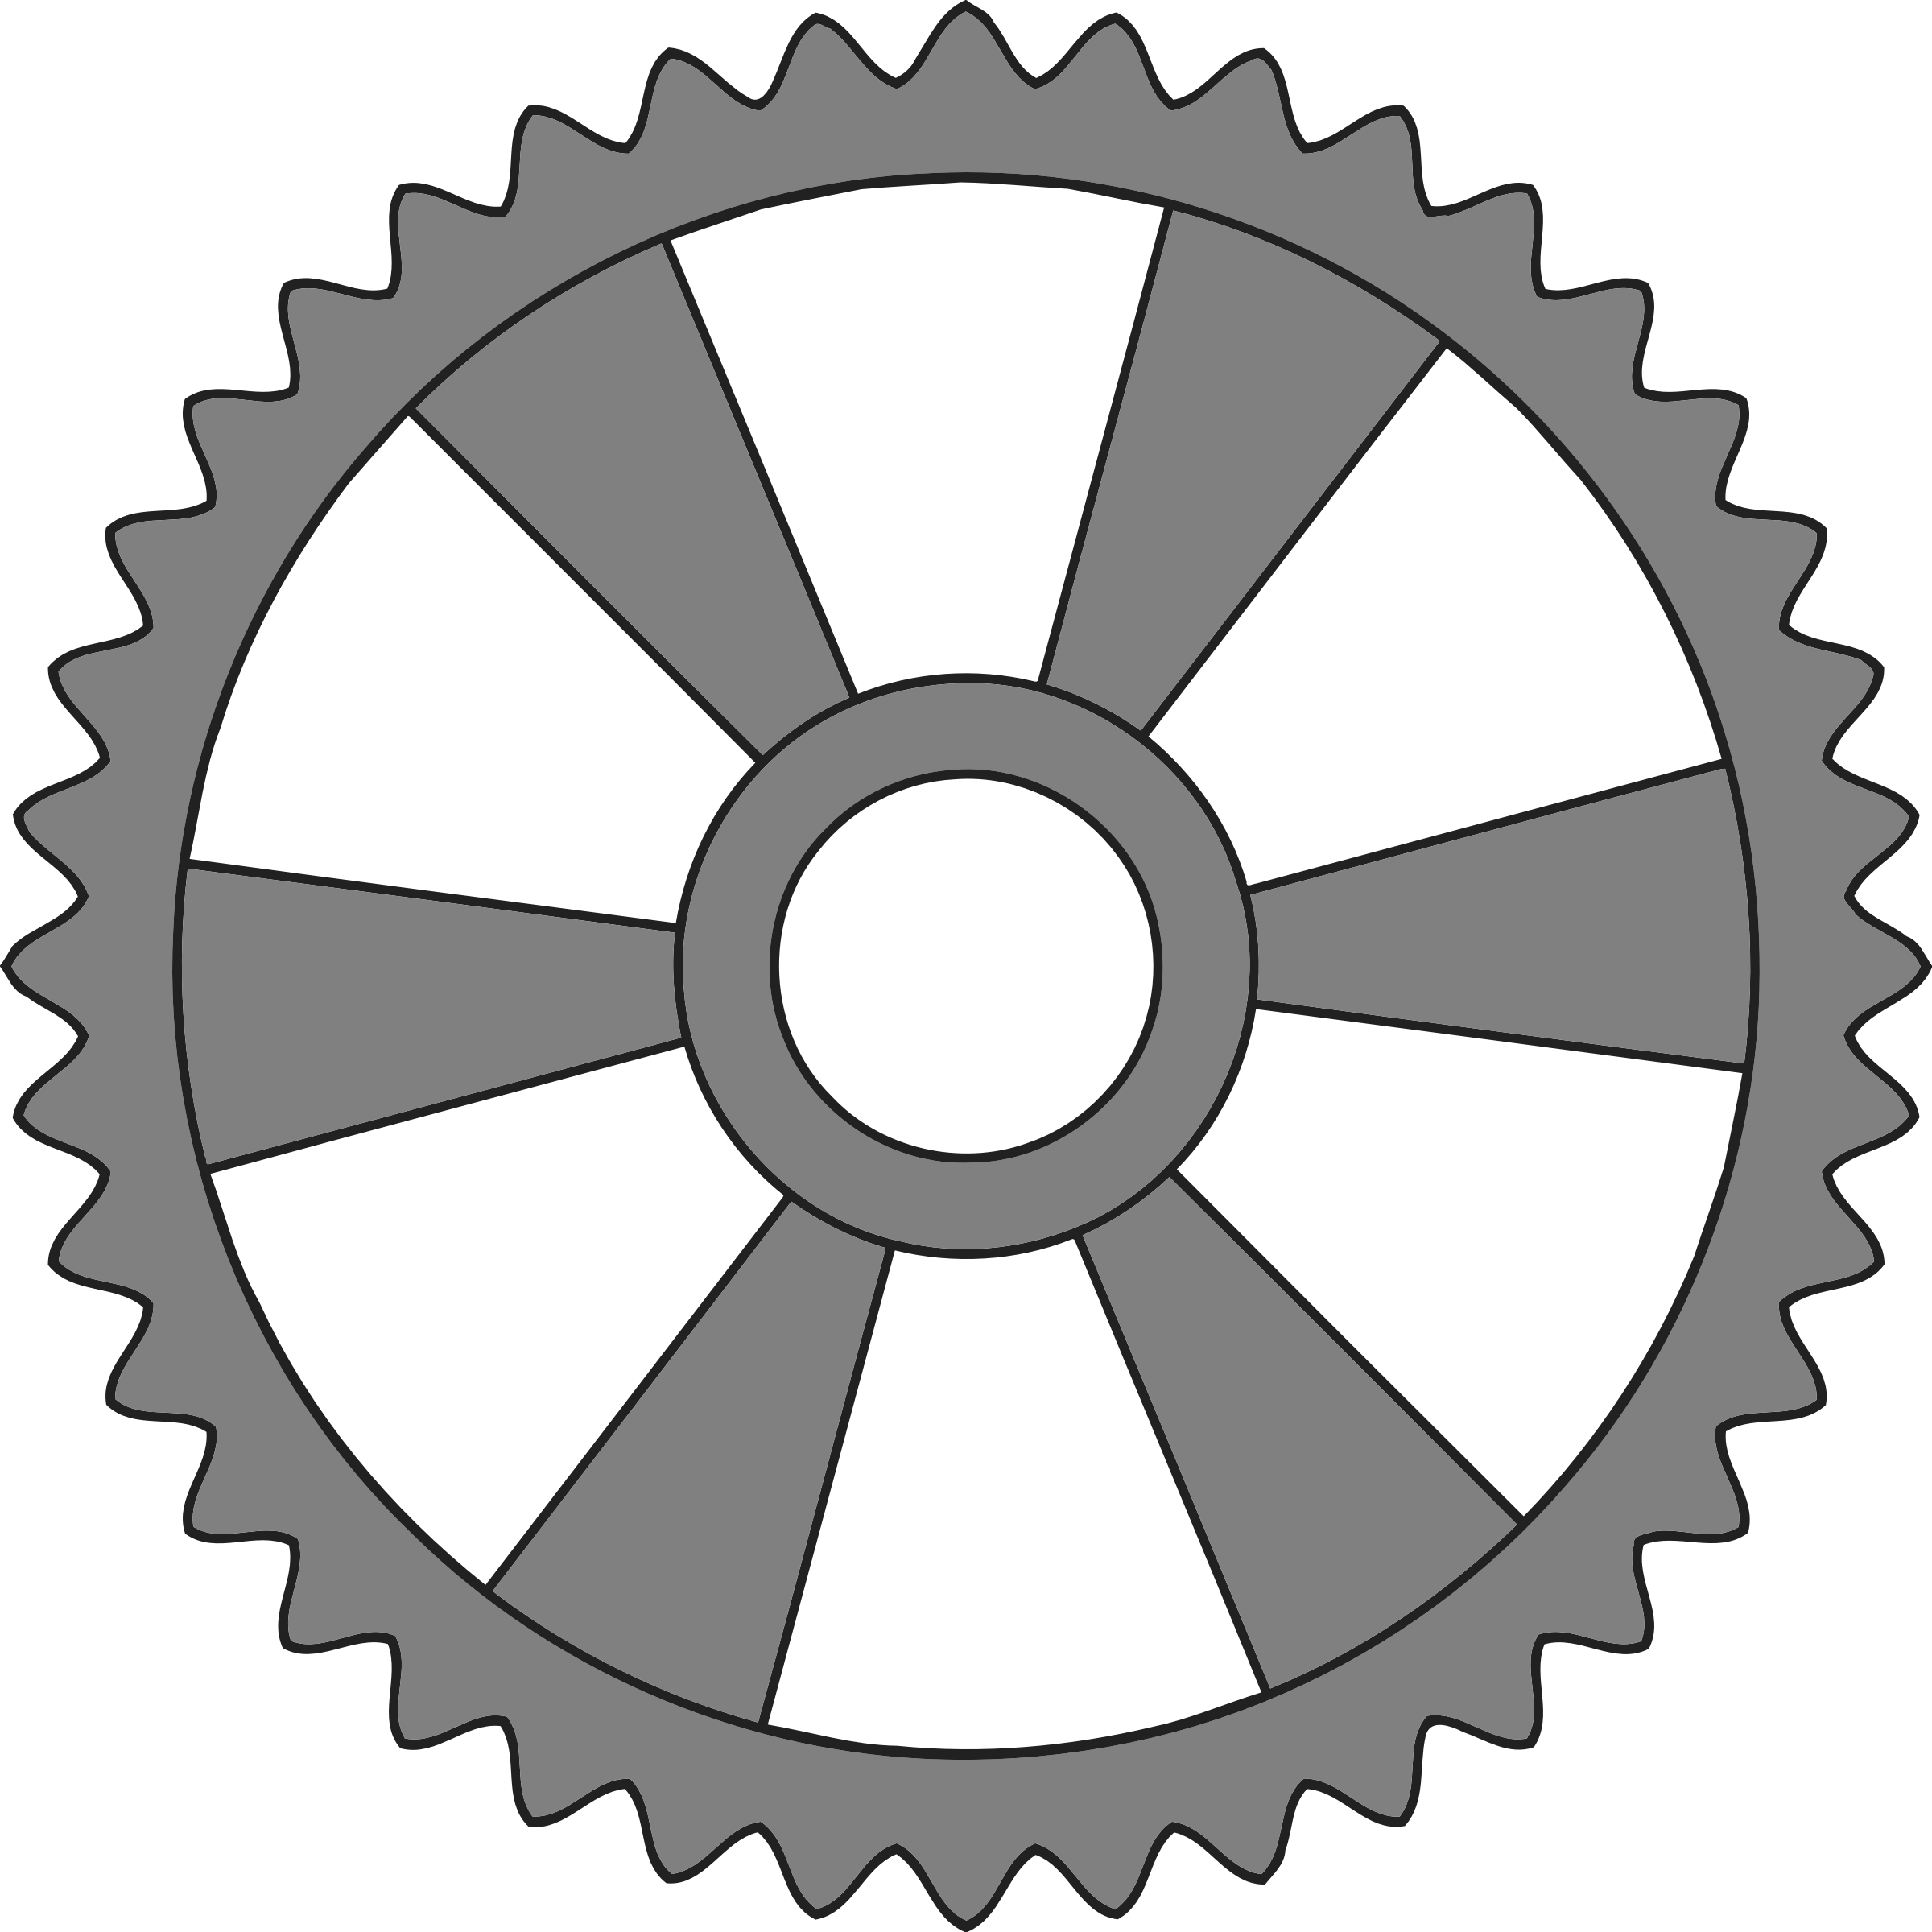 40-tooth gear with radial spokes by Firkin